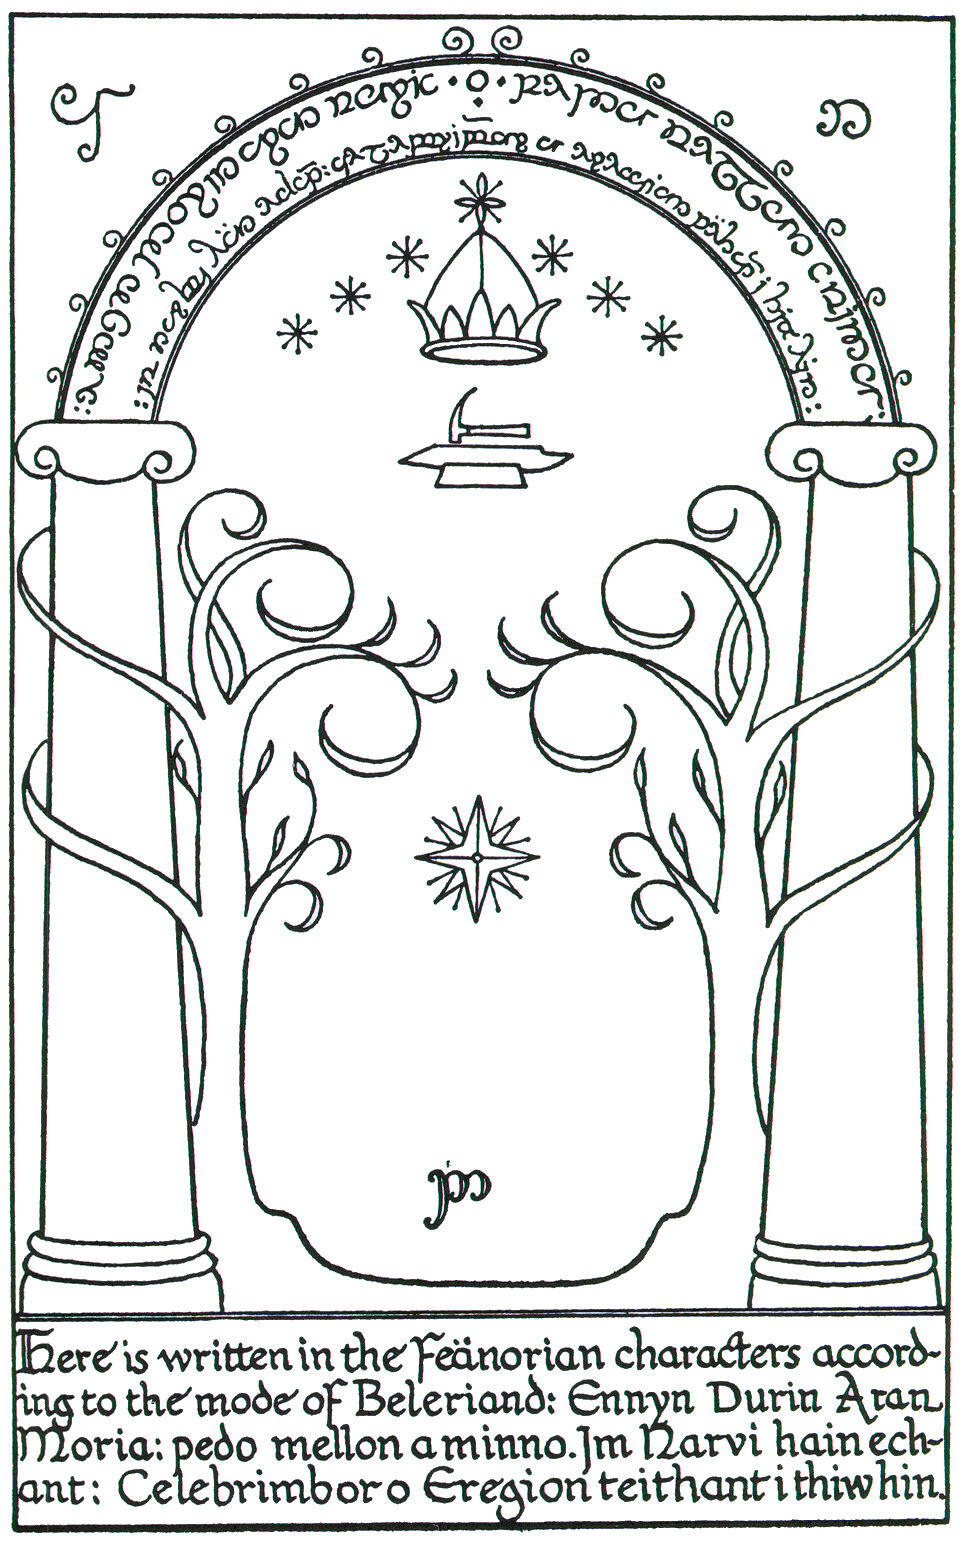 The engraving on Durin's Door at the gate of Moria.